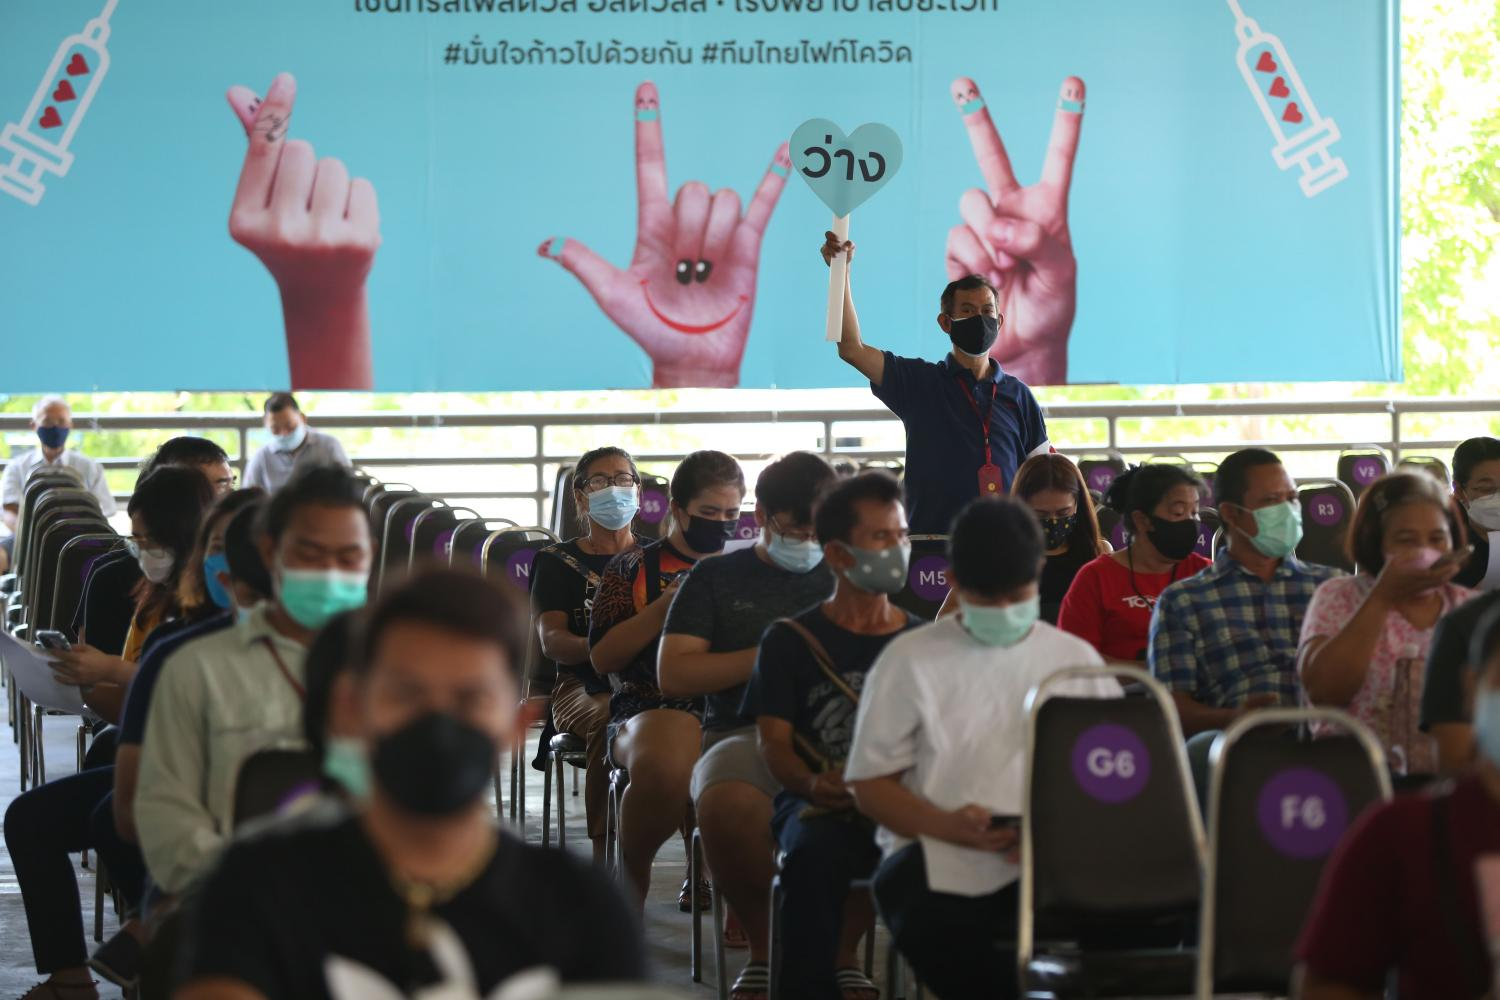 People await their turn for vaccines reserved through the Mor Prom and Thai Ruam Jai system at Central Festival Eastville on Wednesday.(Photo: Varuth Hirunyatheb)